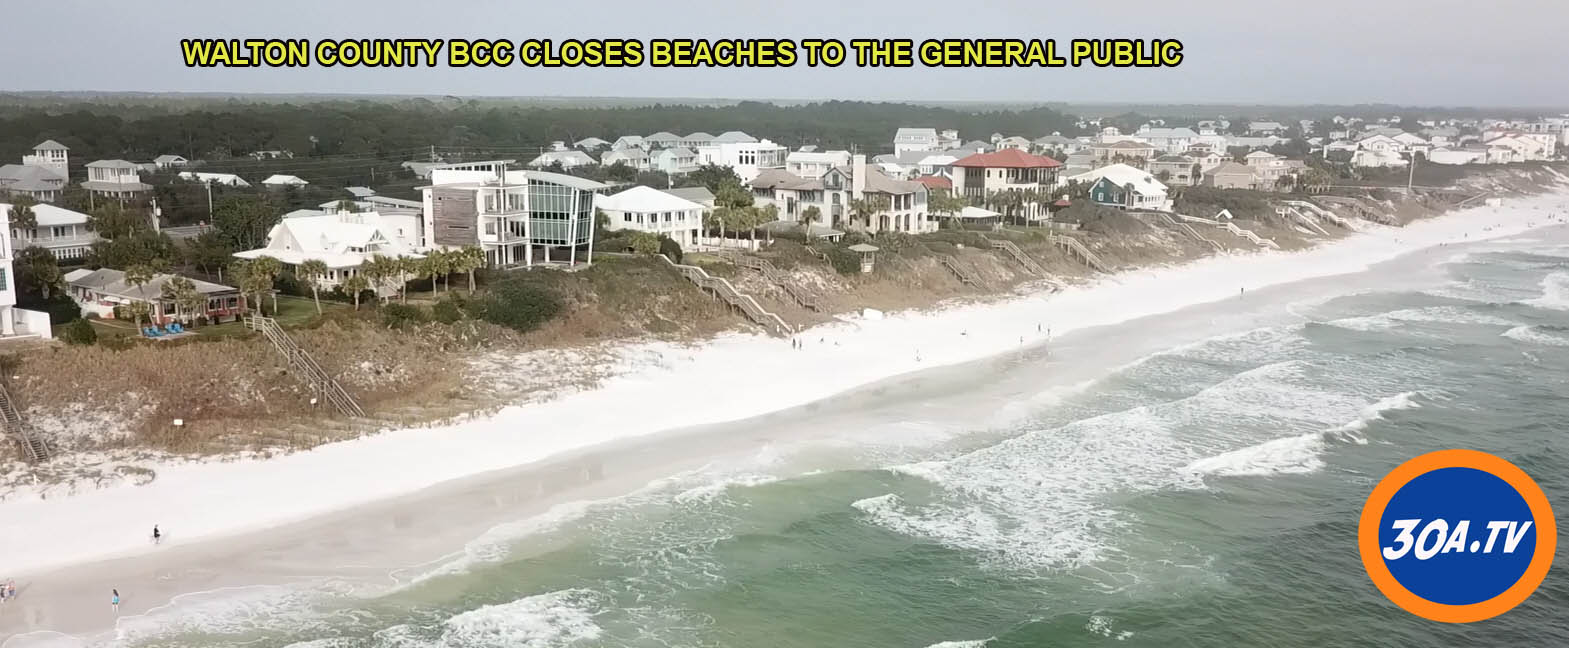 WALTON COUNTY BCC CLOSES BEACHES TO THE GENERAL PUBLIC